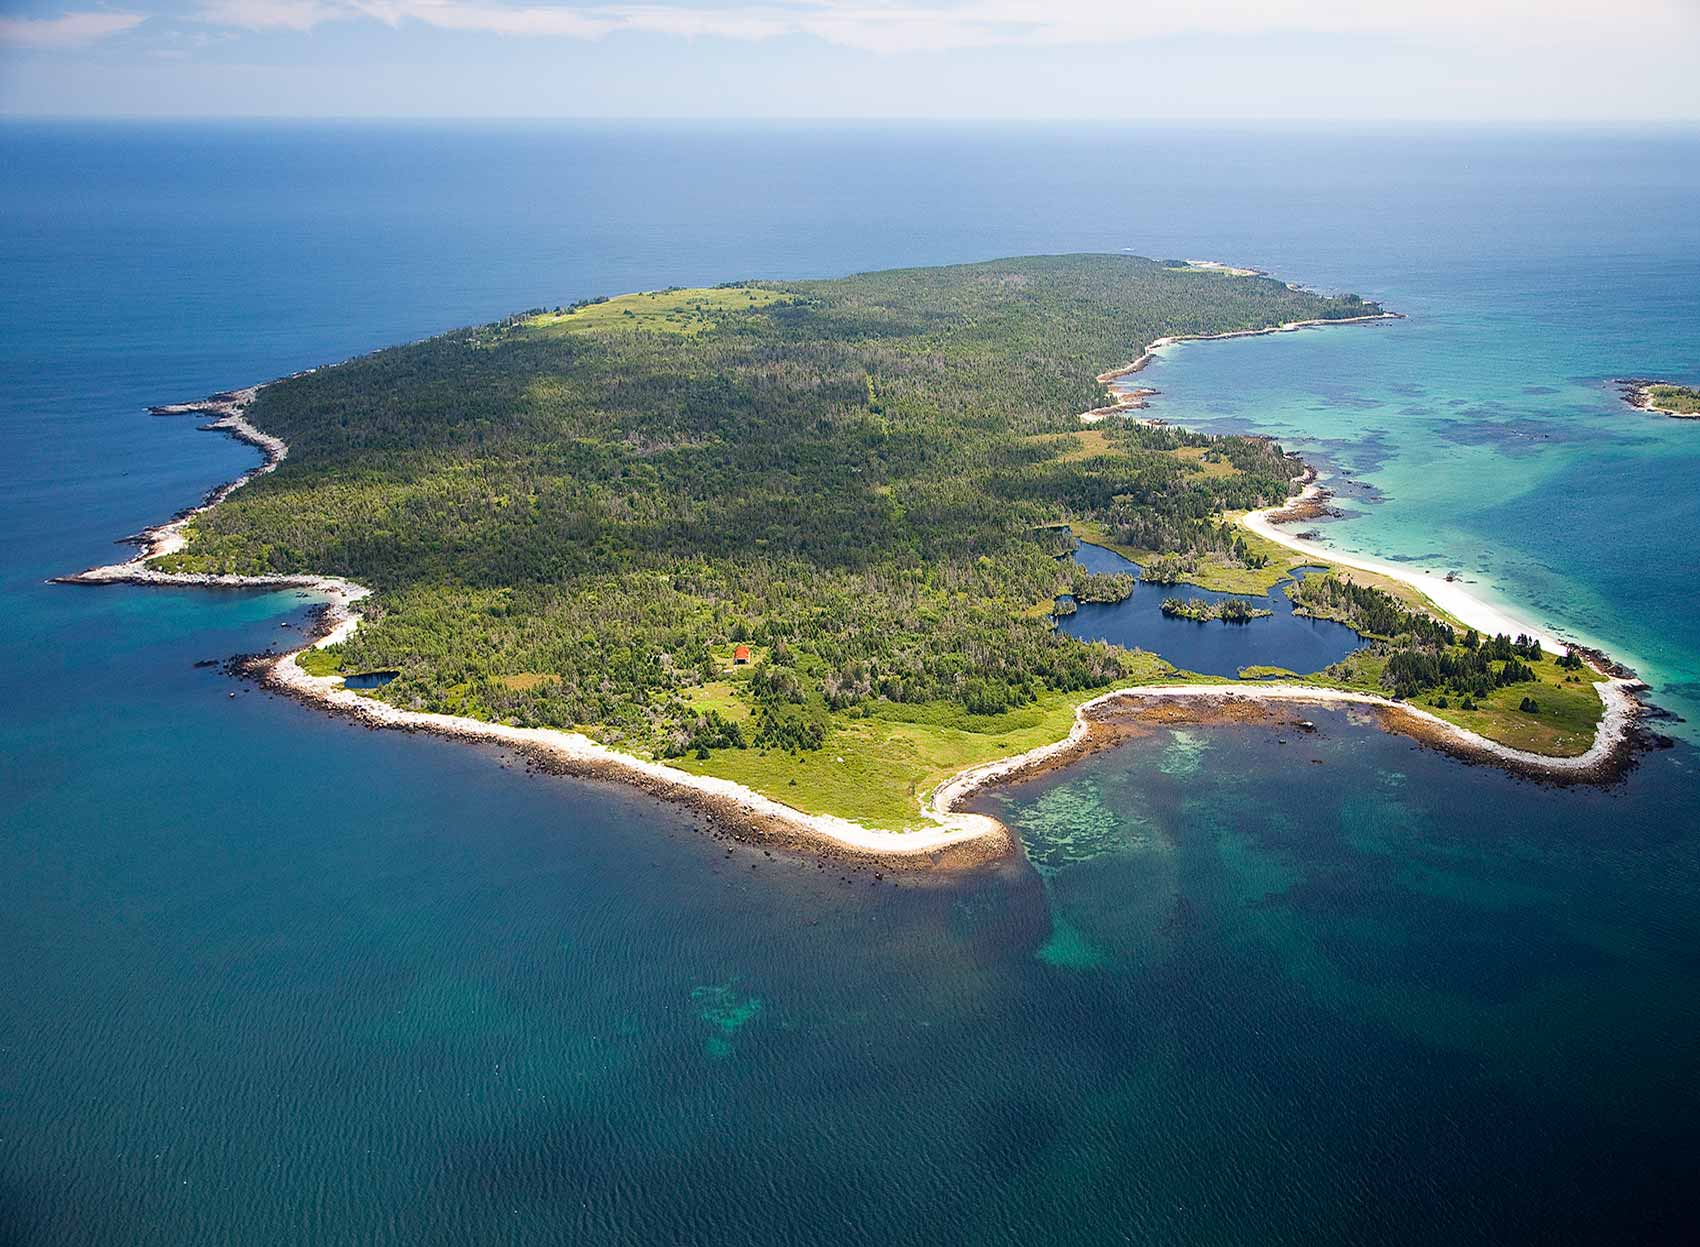 Canadian Private Islands For Sale